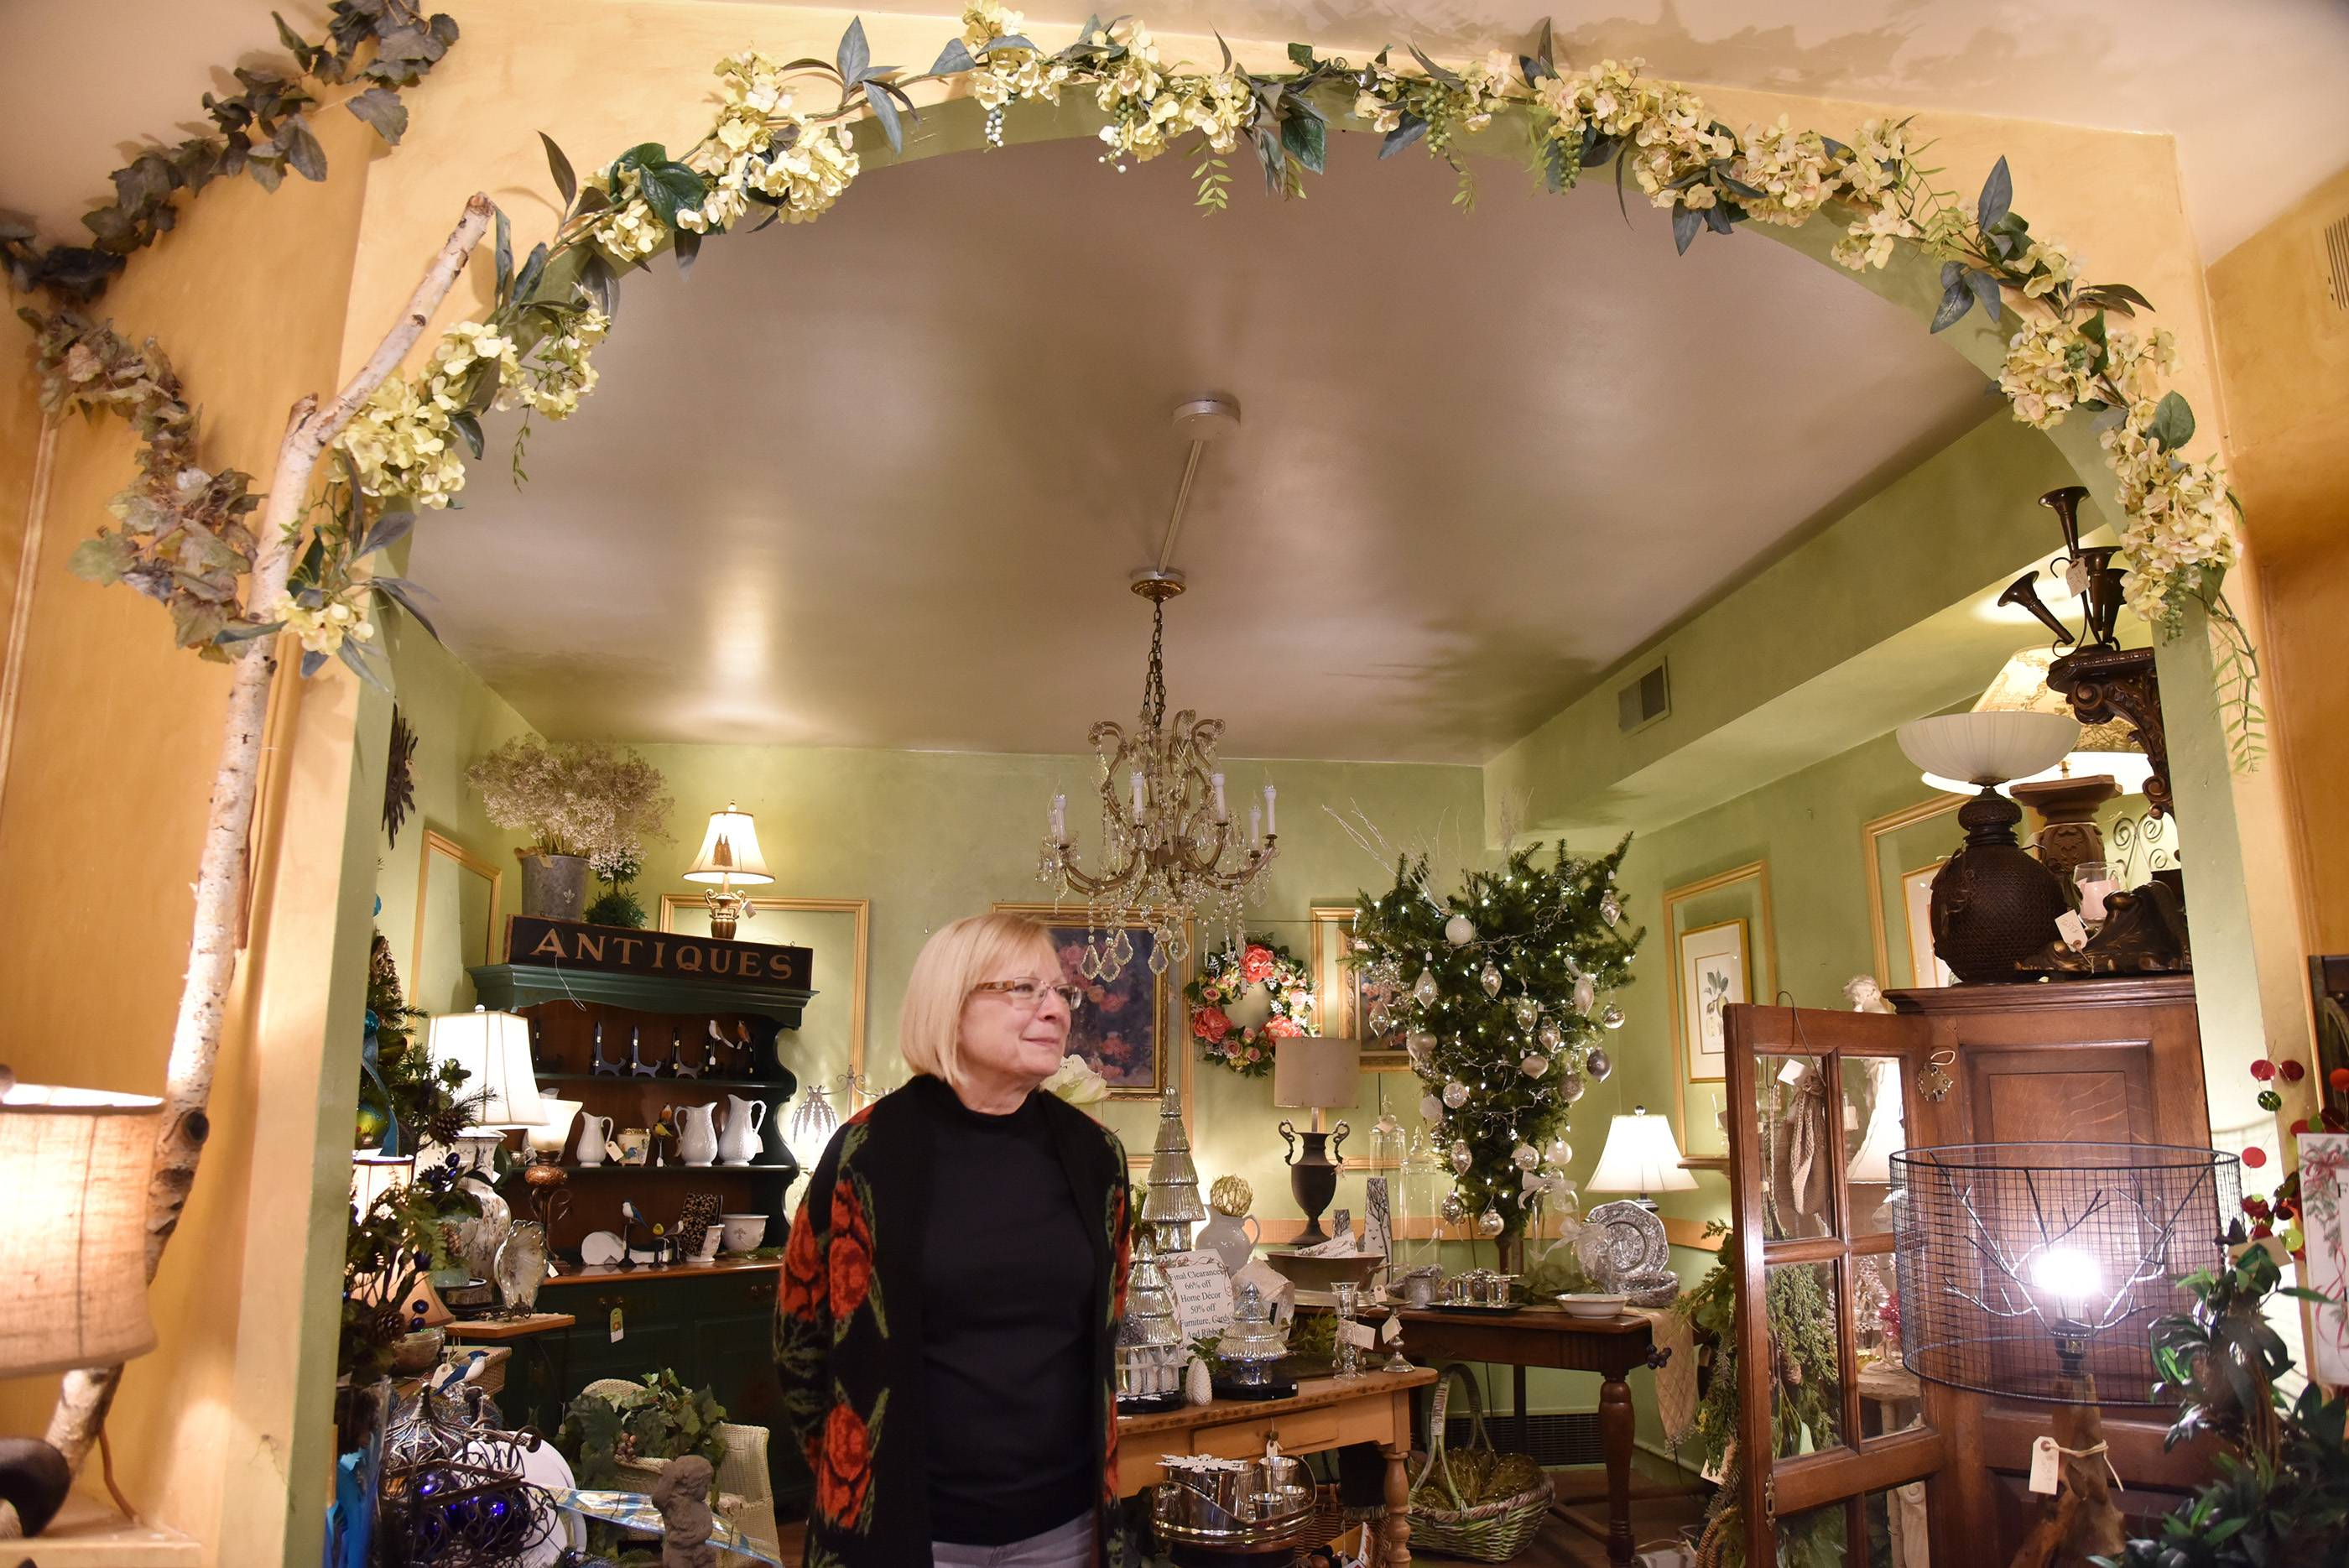 Downtown Barrington's Fresh Flower Market will close its doors for good Saturday. Owner Liz Bremner is retiring and said she could not find a suitable buyer.